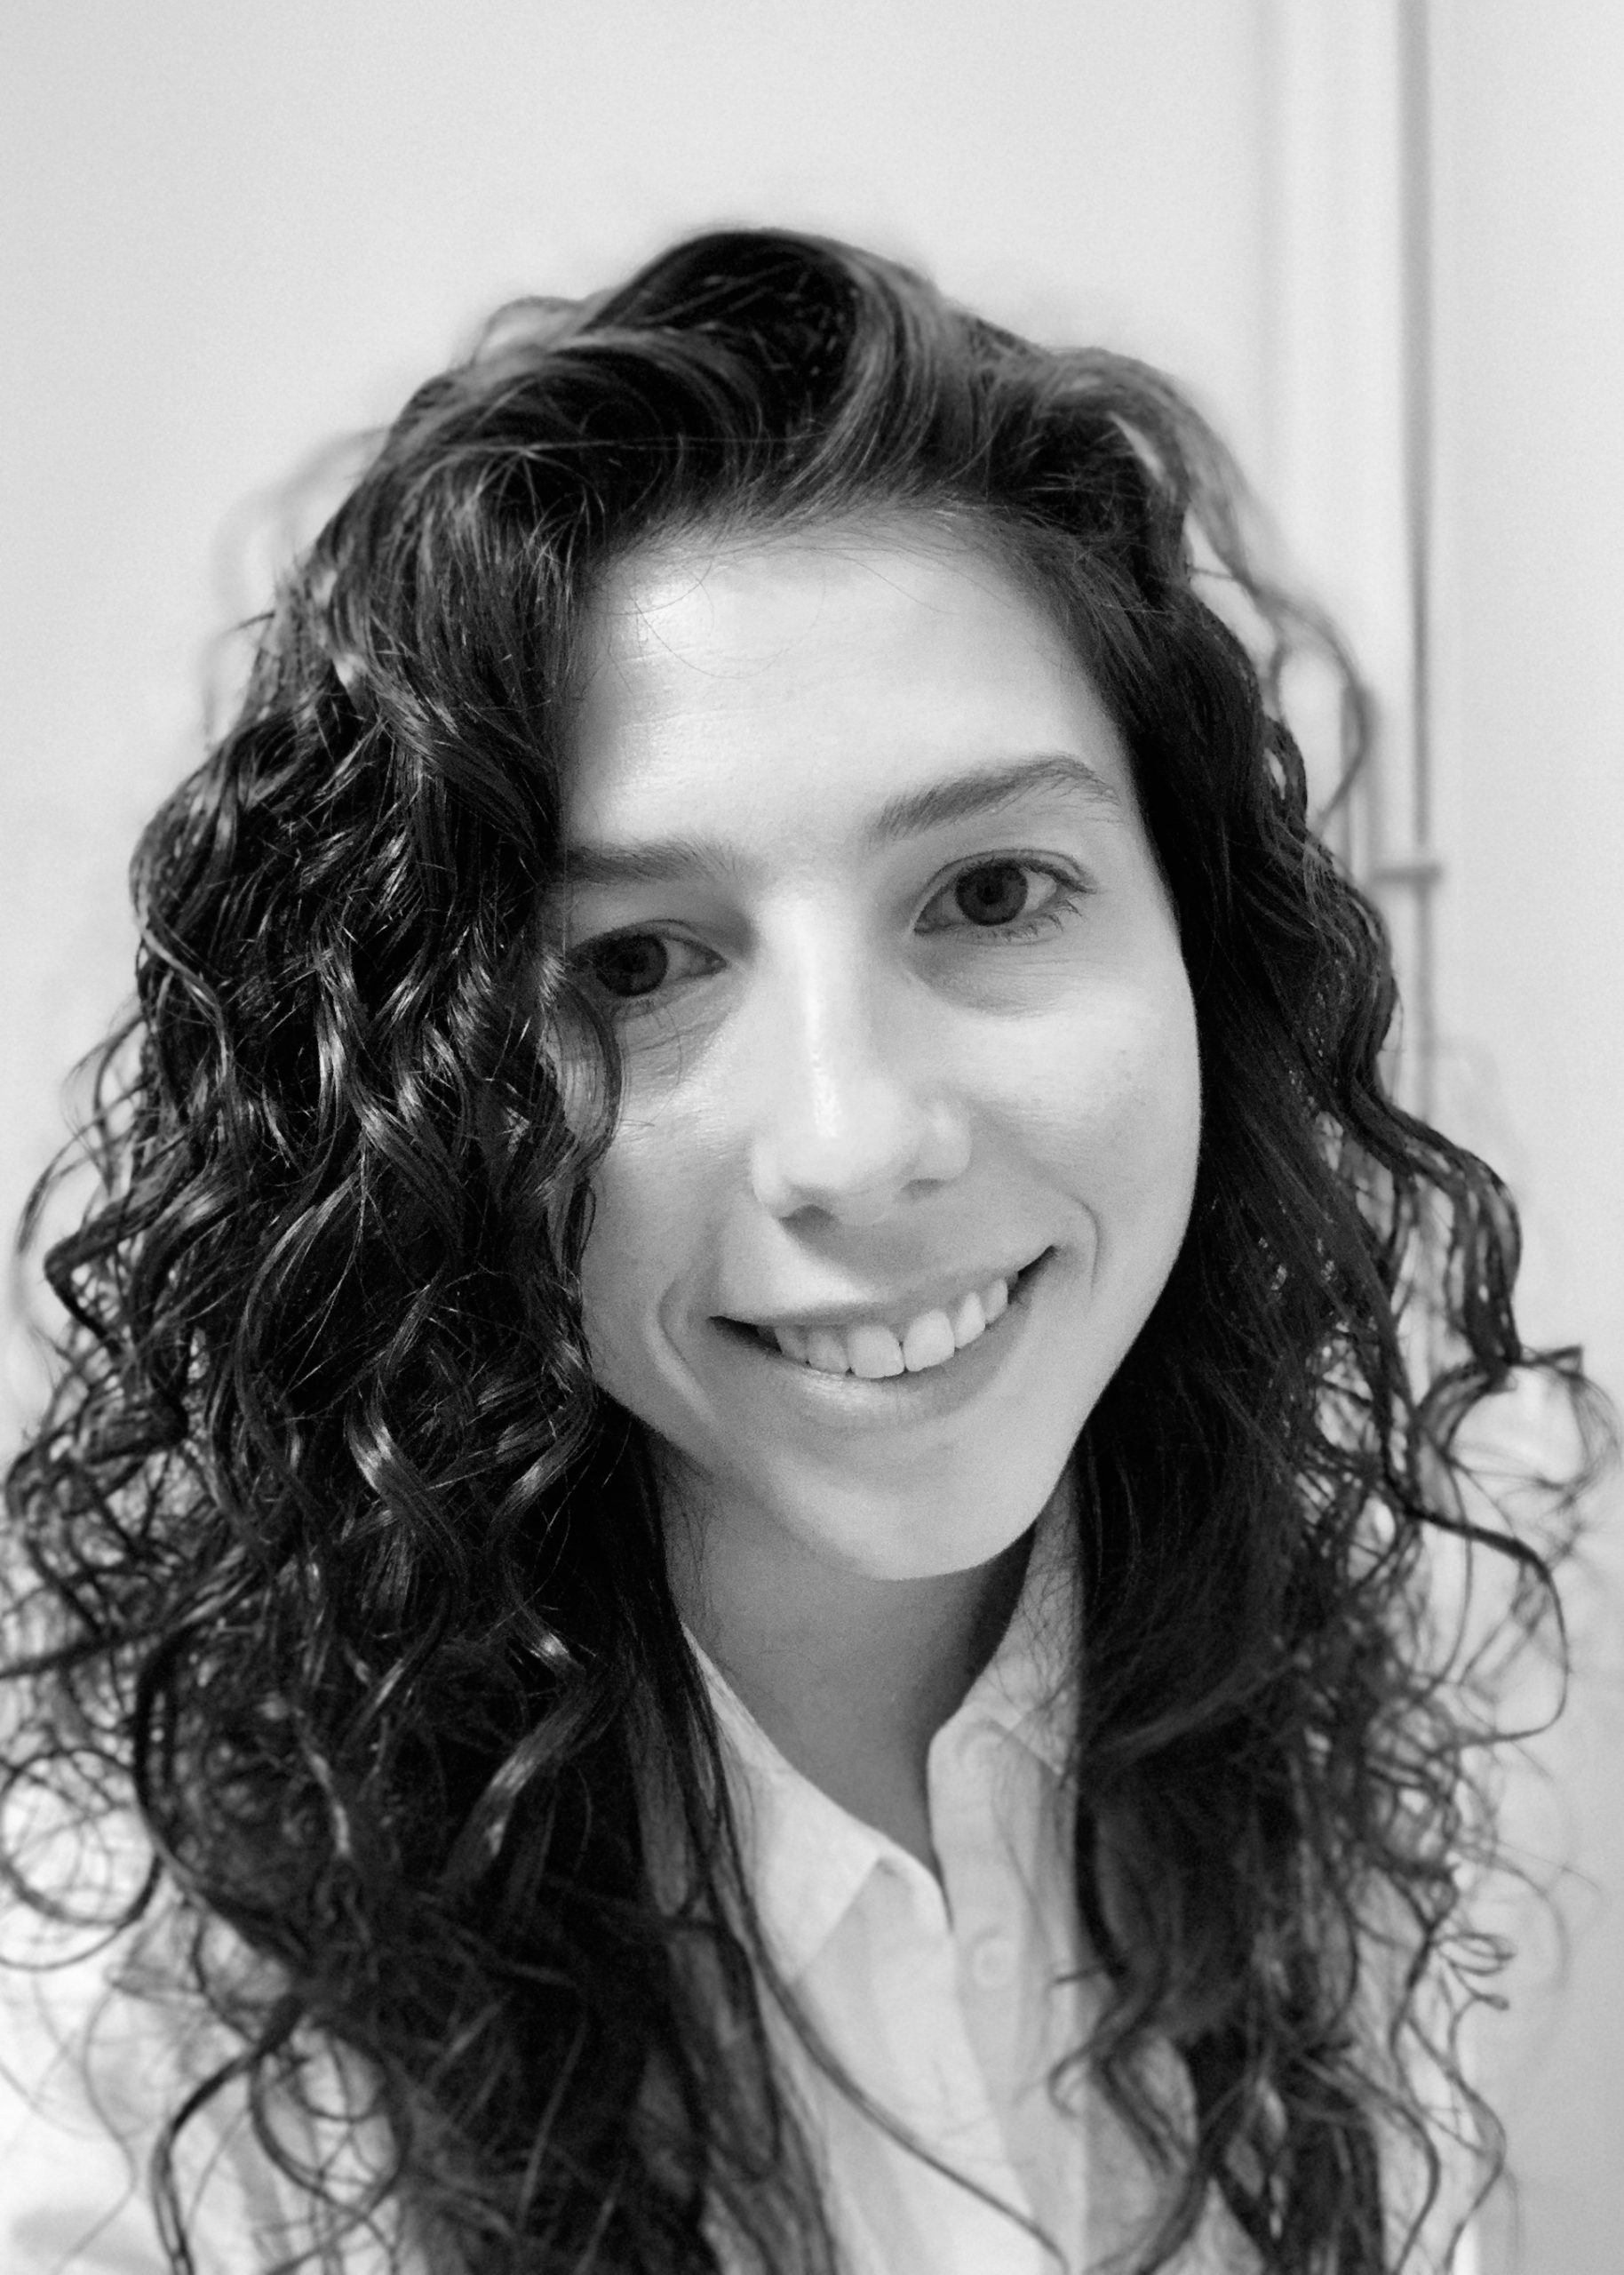 Meet Mary Al-Sayed, Our New Editor for Anthropology & History